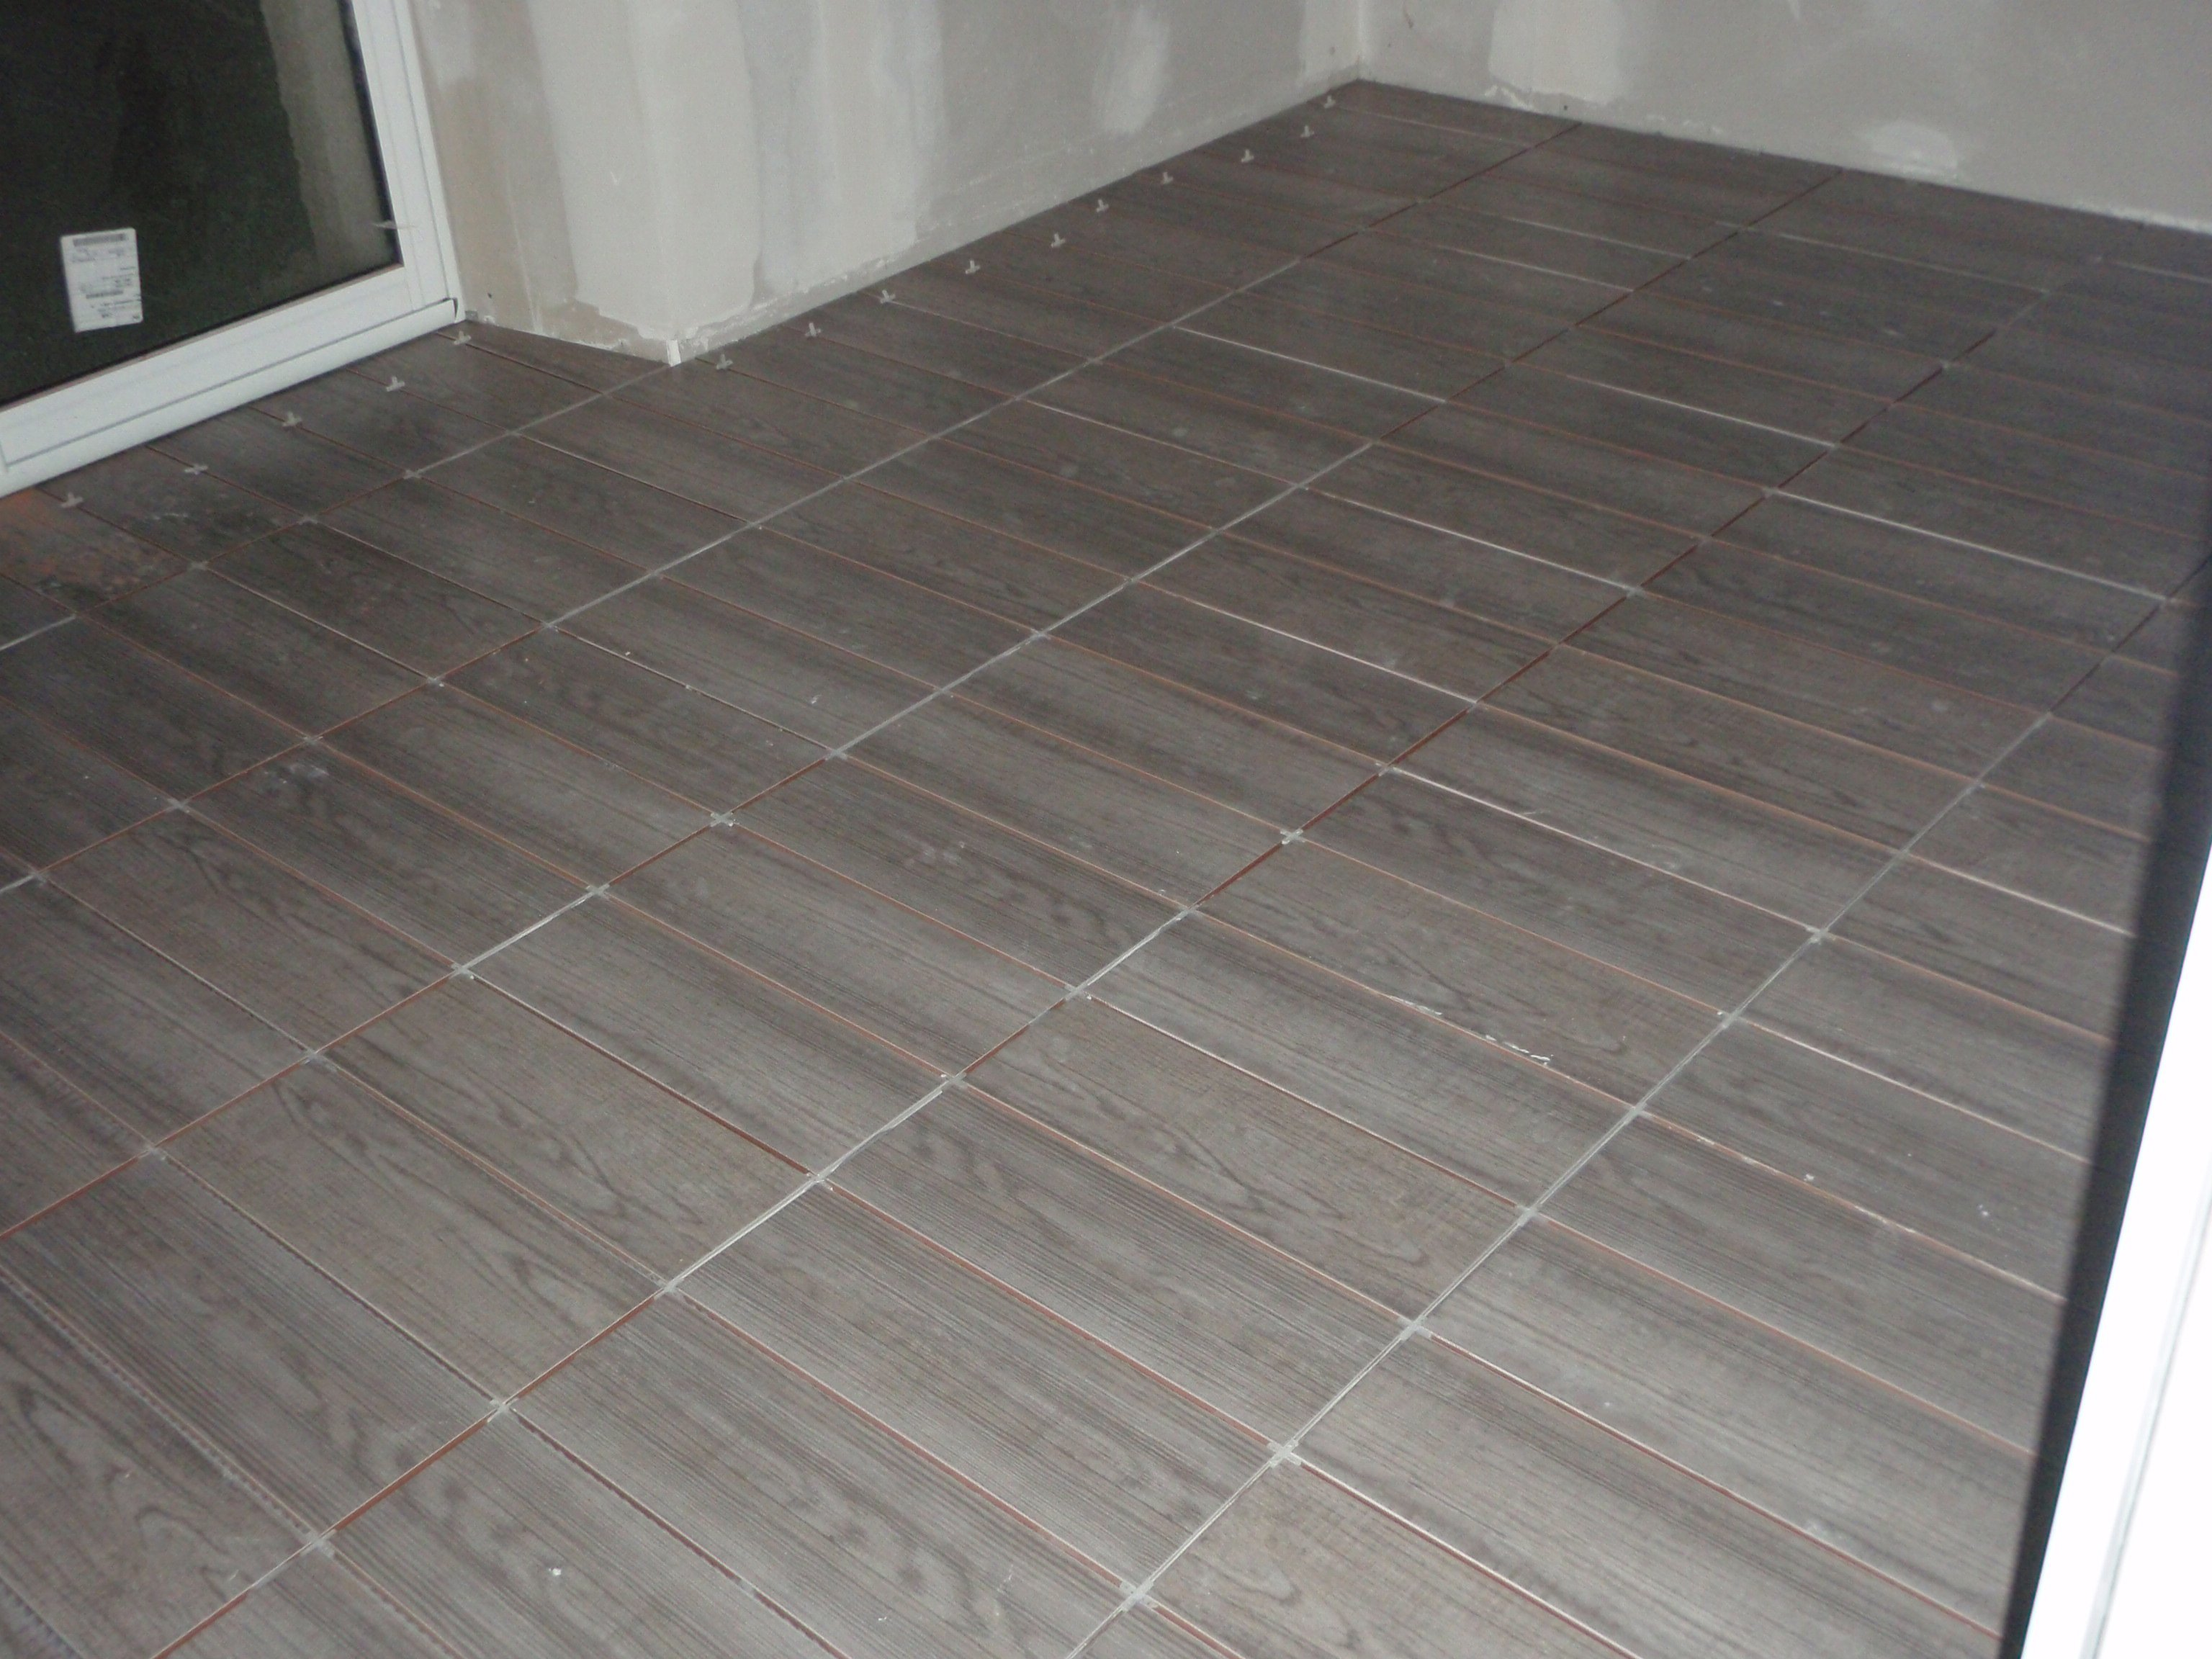 Une long re un projet une r novation carrelage c for Pose carrelage sol imitation parquet